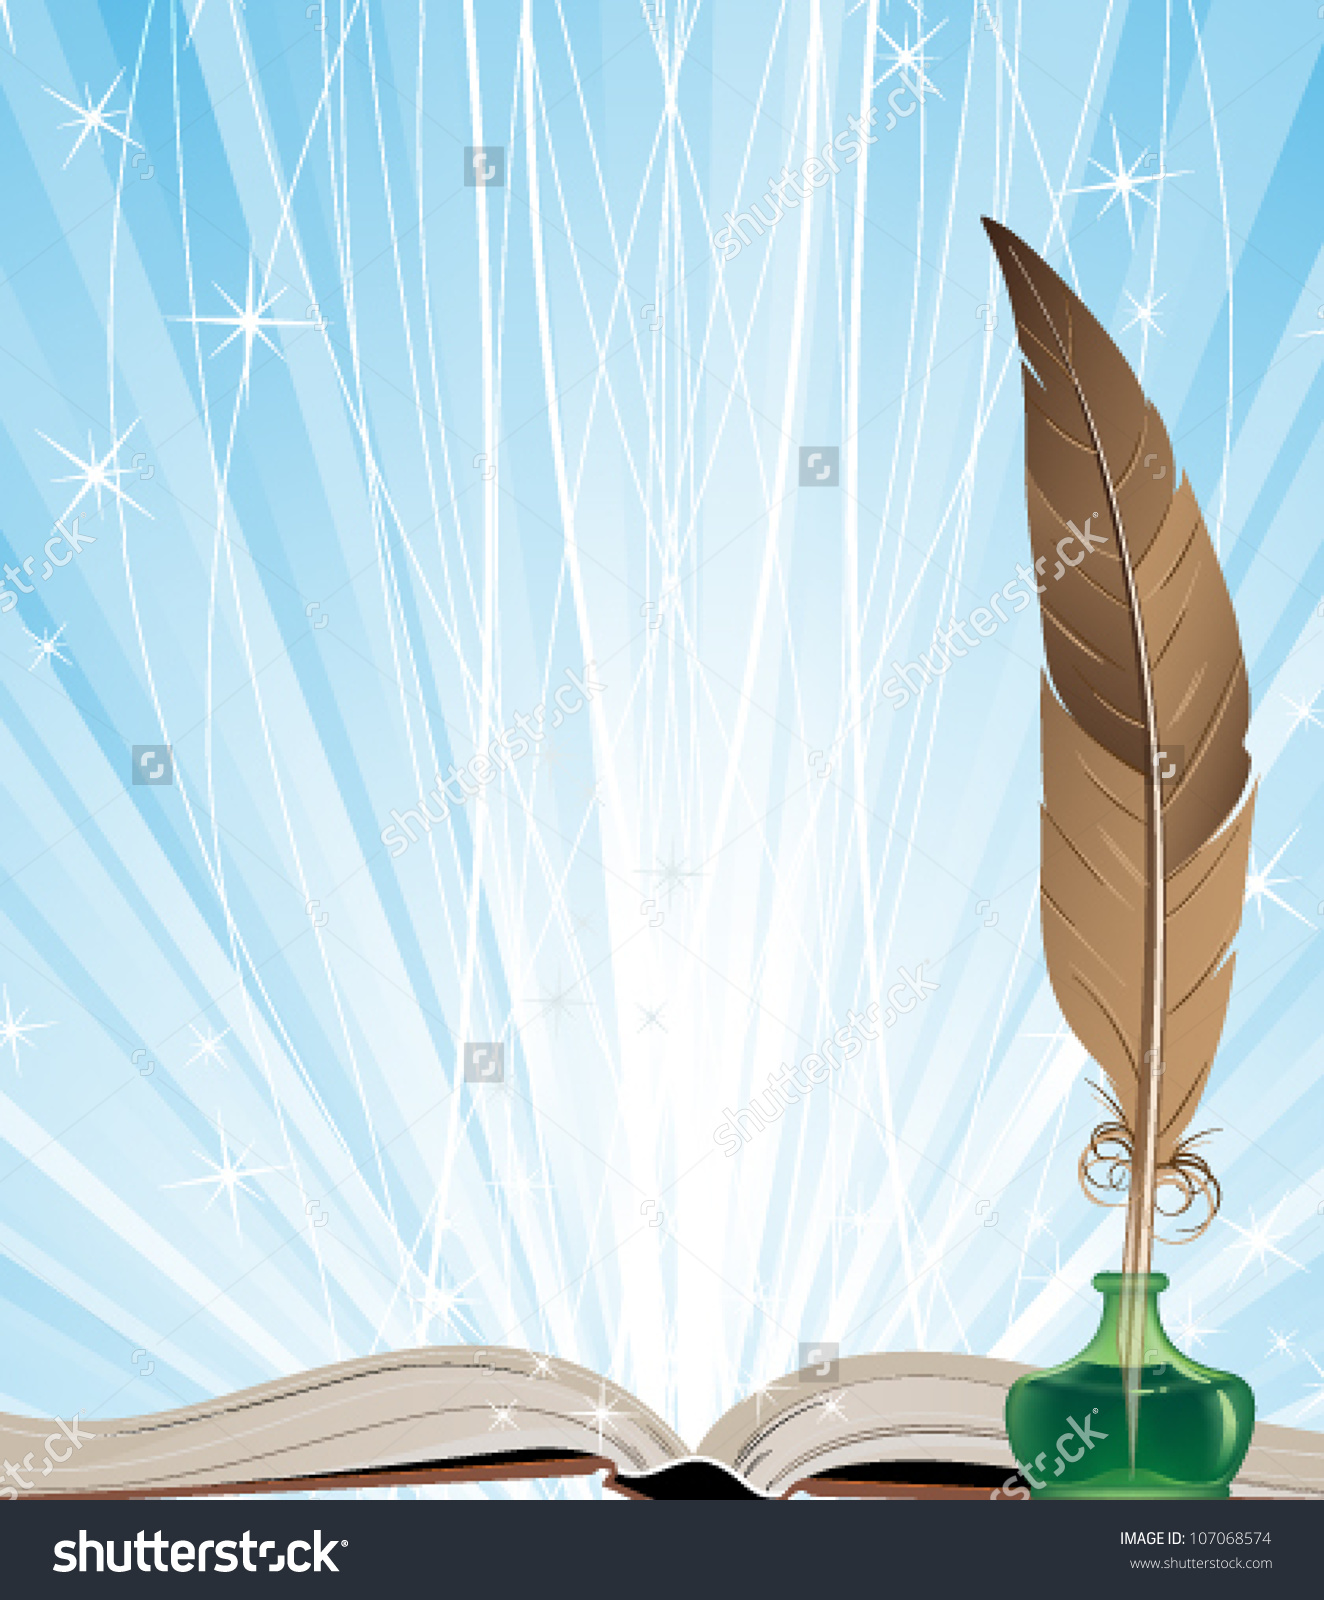 Open Book Ink Feather On Blue Stock Vector 107068574 - Shutterstock